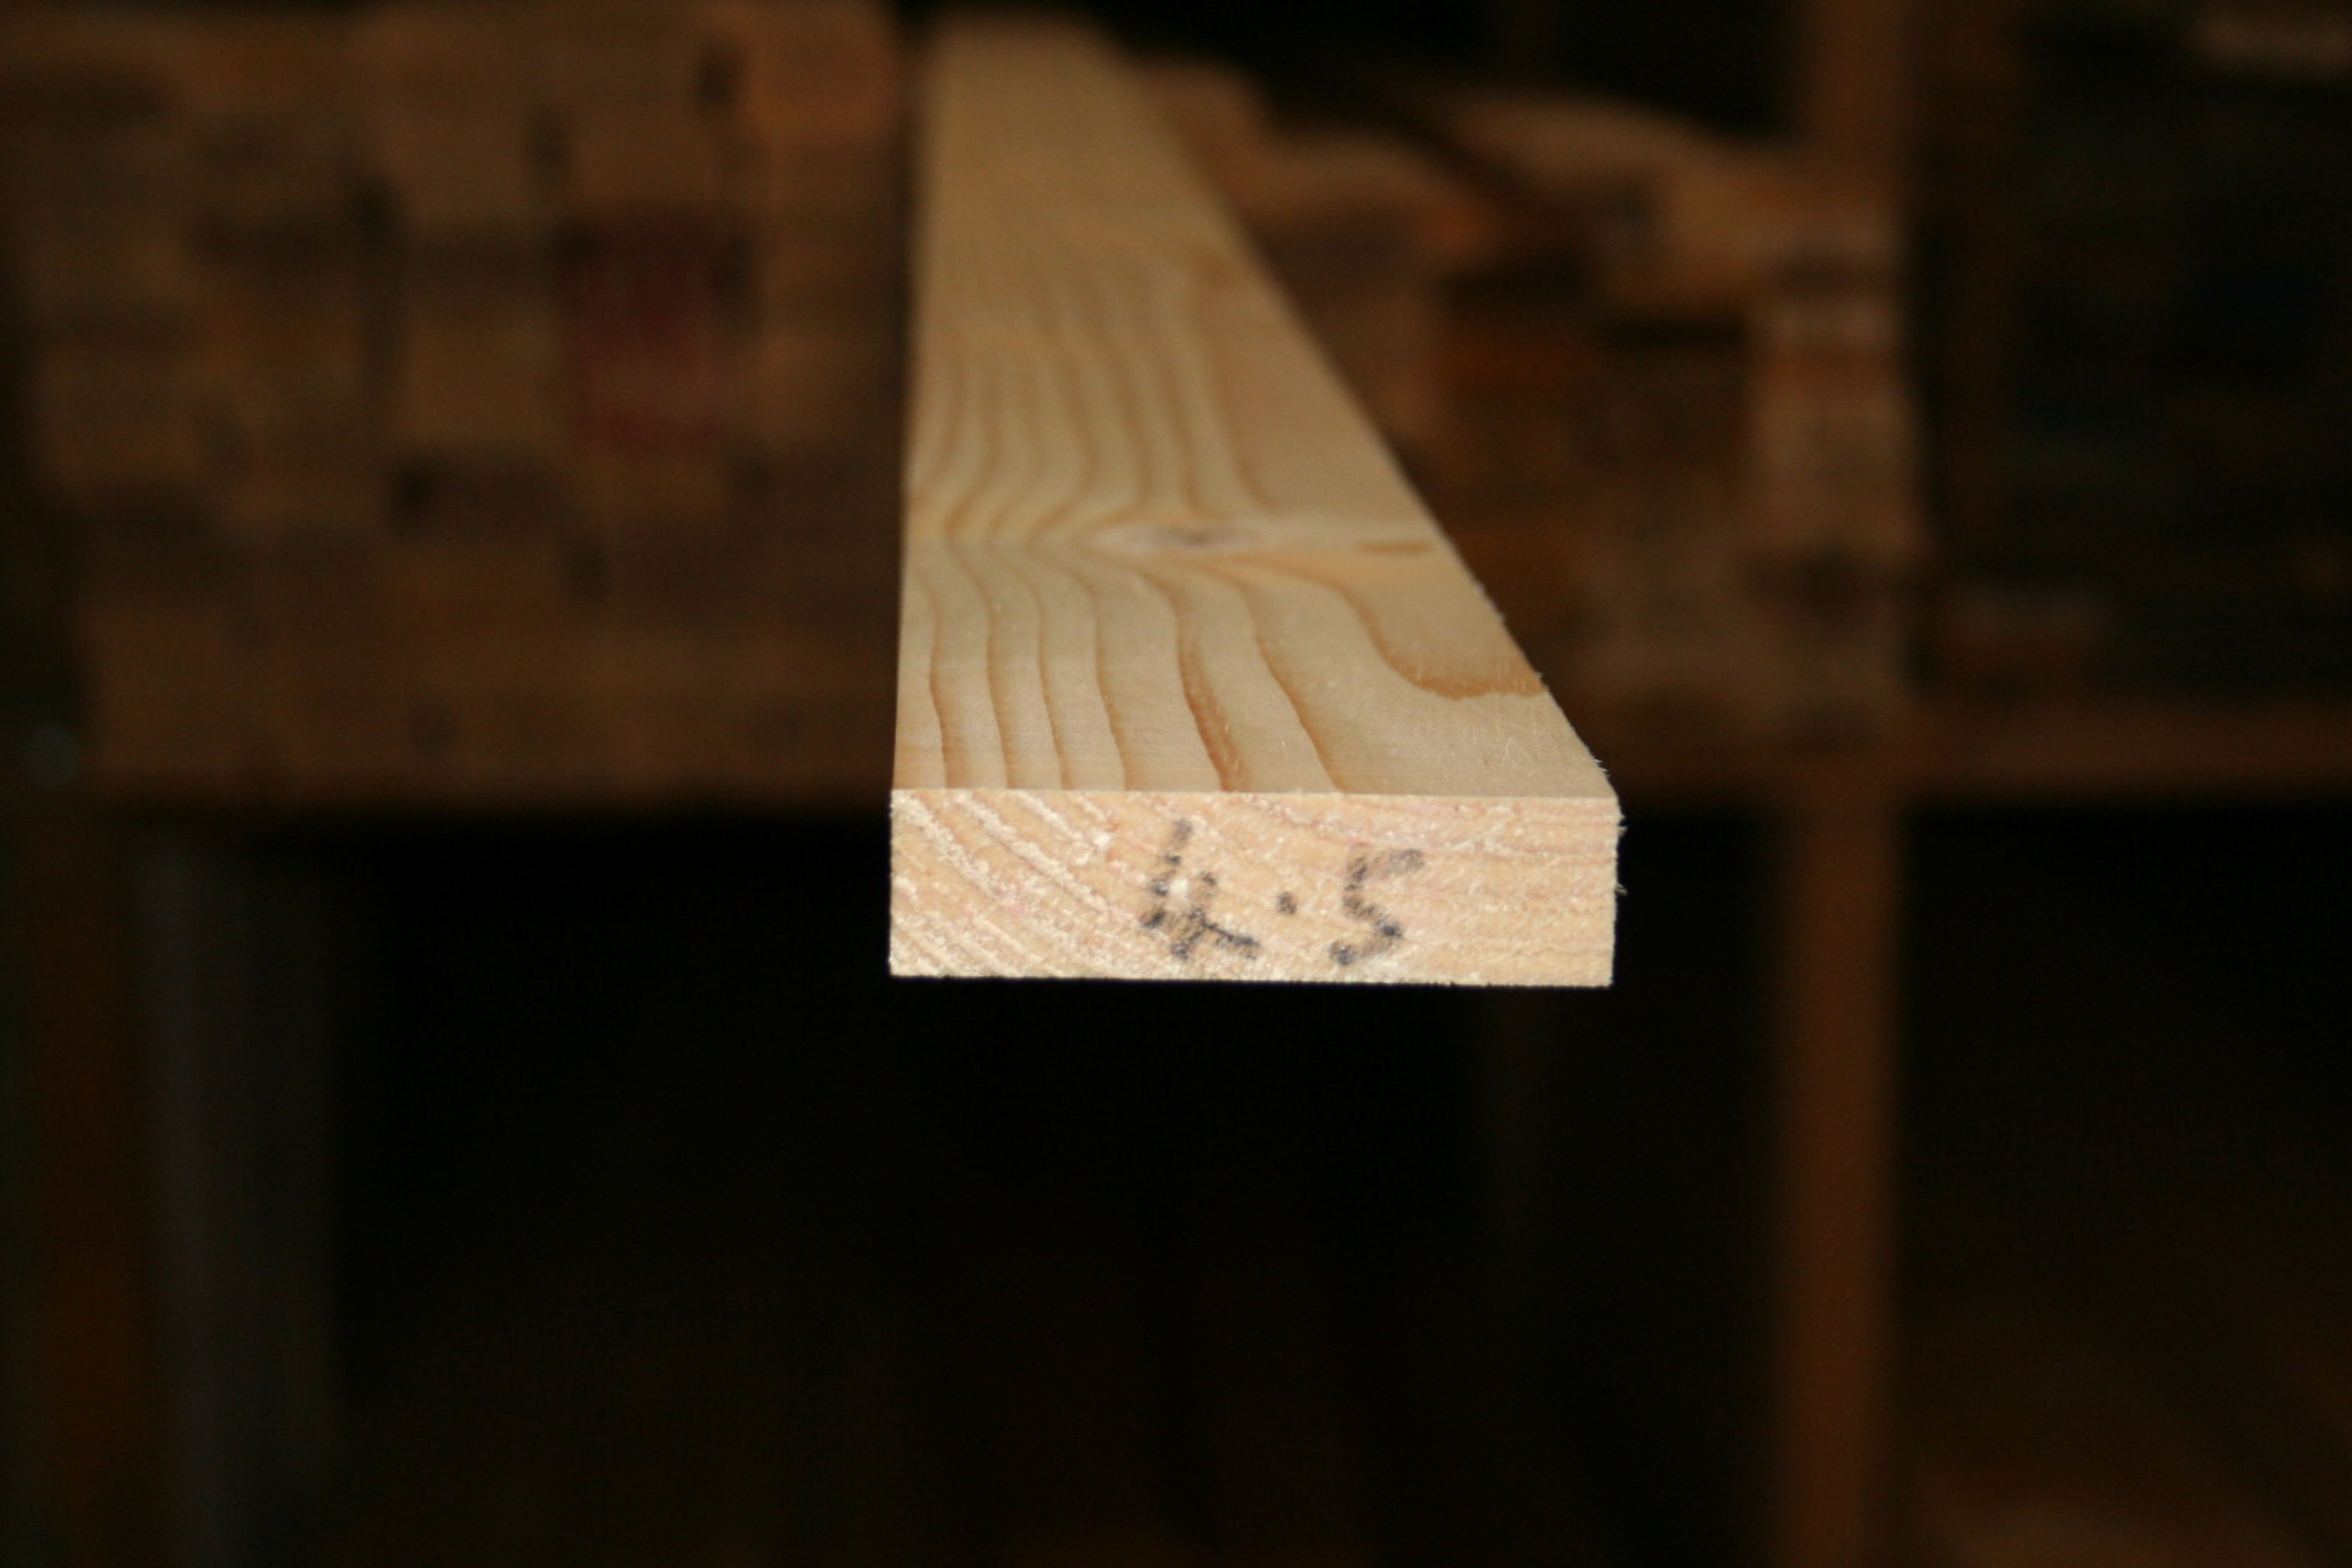 Pine 3x1 PSE Whitewood Timber Length